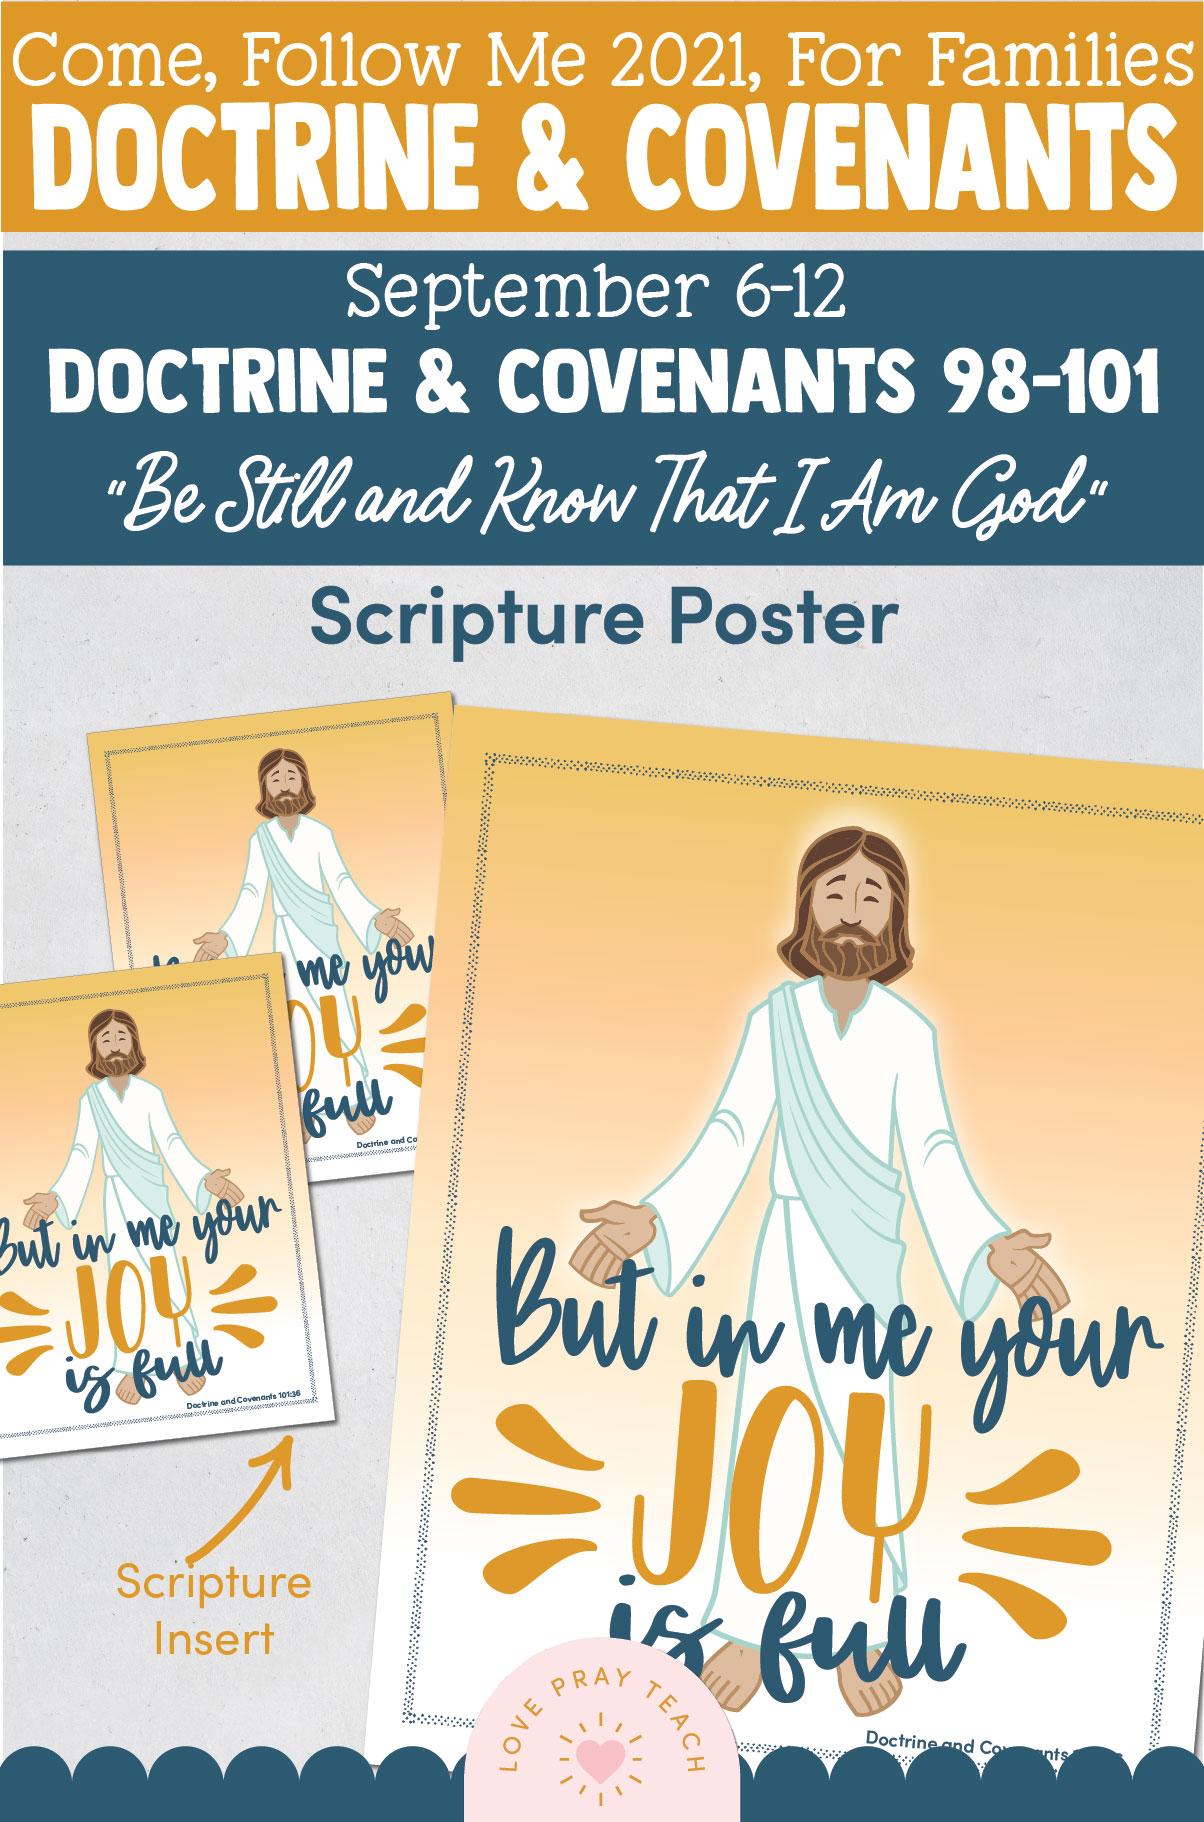 """Come, Follow Me—For Individuals and Families: Doctrine And Covenants 2021, September Week 2 Doctrine and Covenants 98-101: September 6-12,""""Be Still and Know That I Am God"""""""